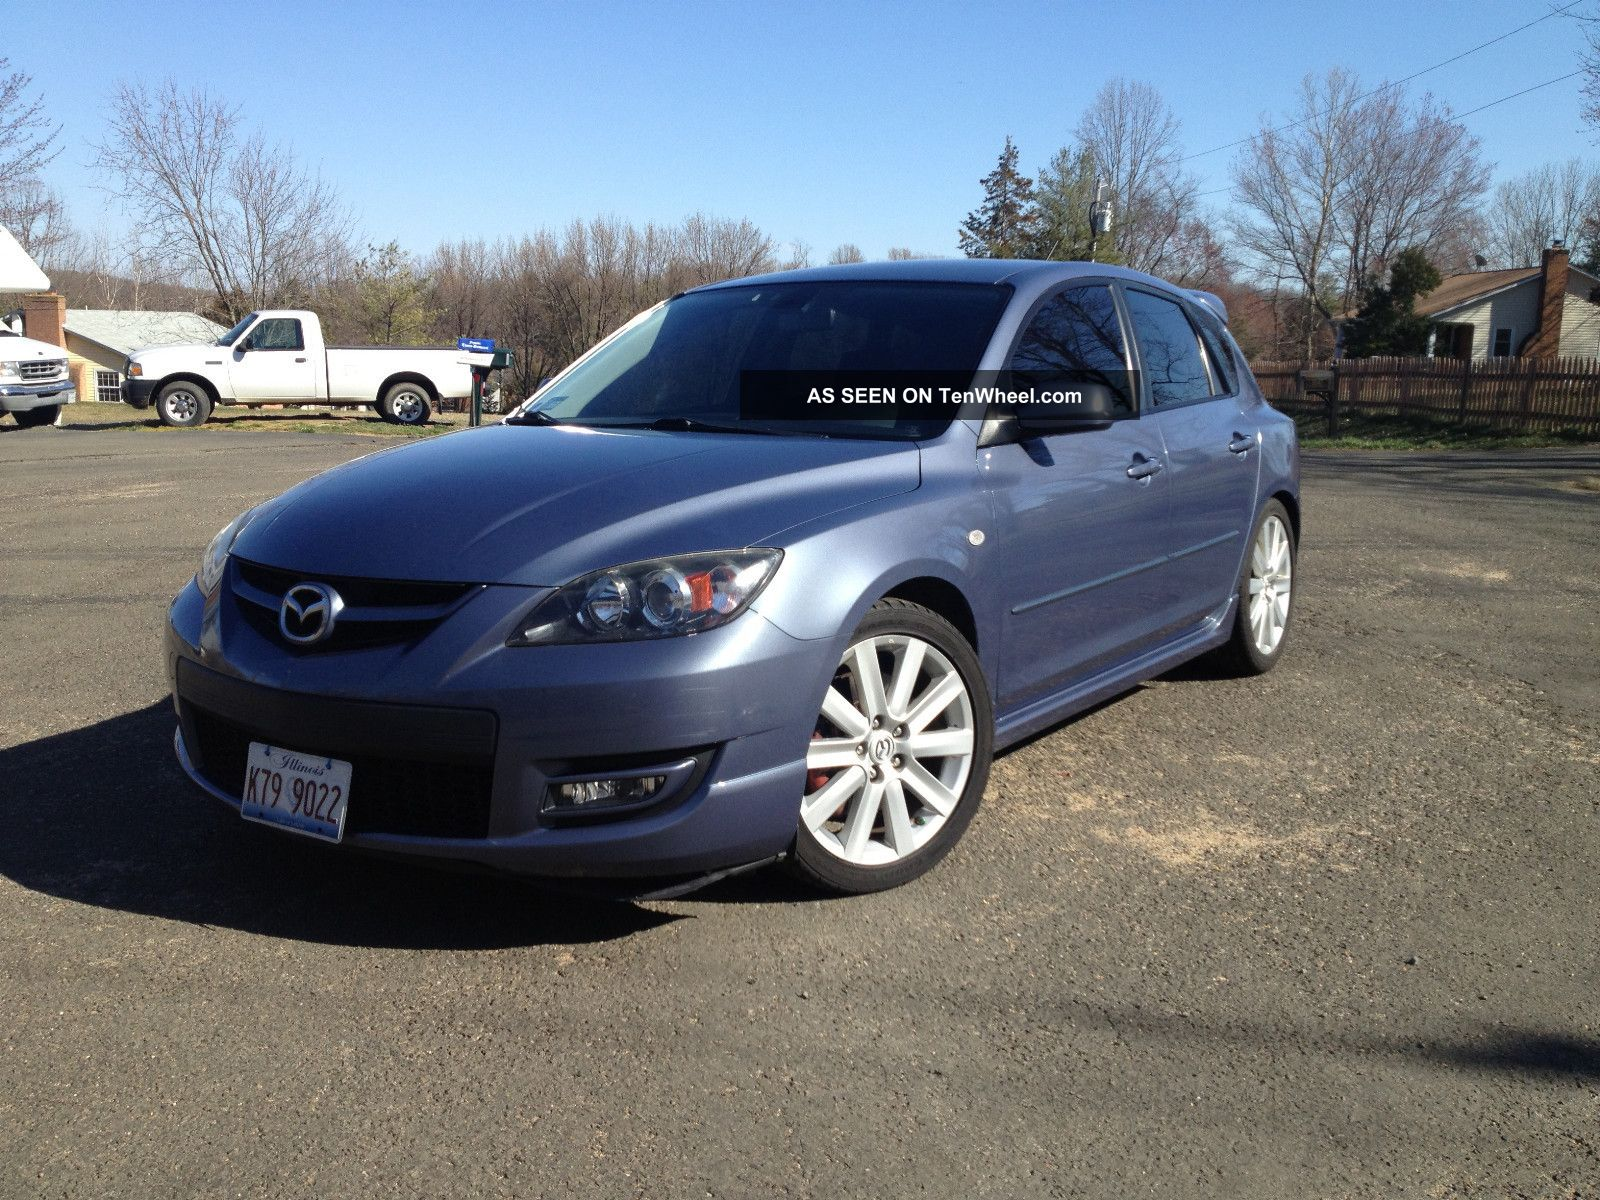 2007 mazda 3 mazdaspeed hatchback 4 door 2 3l some mods. Black Bedroom Furniture Sets. Home Design Ideas